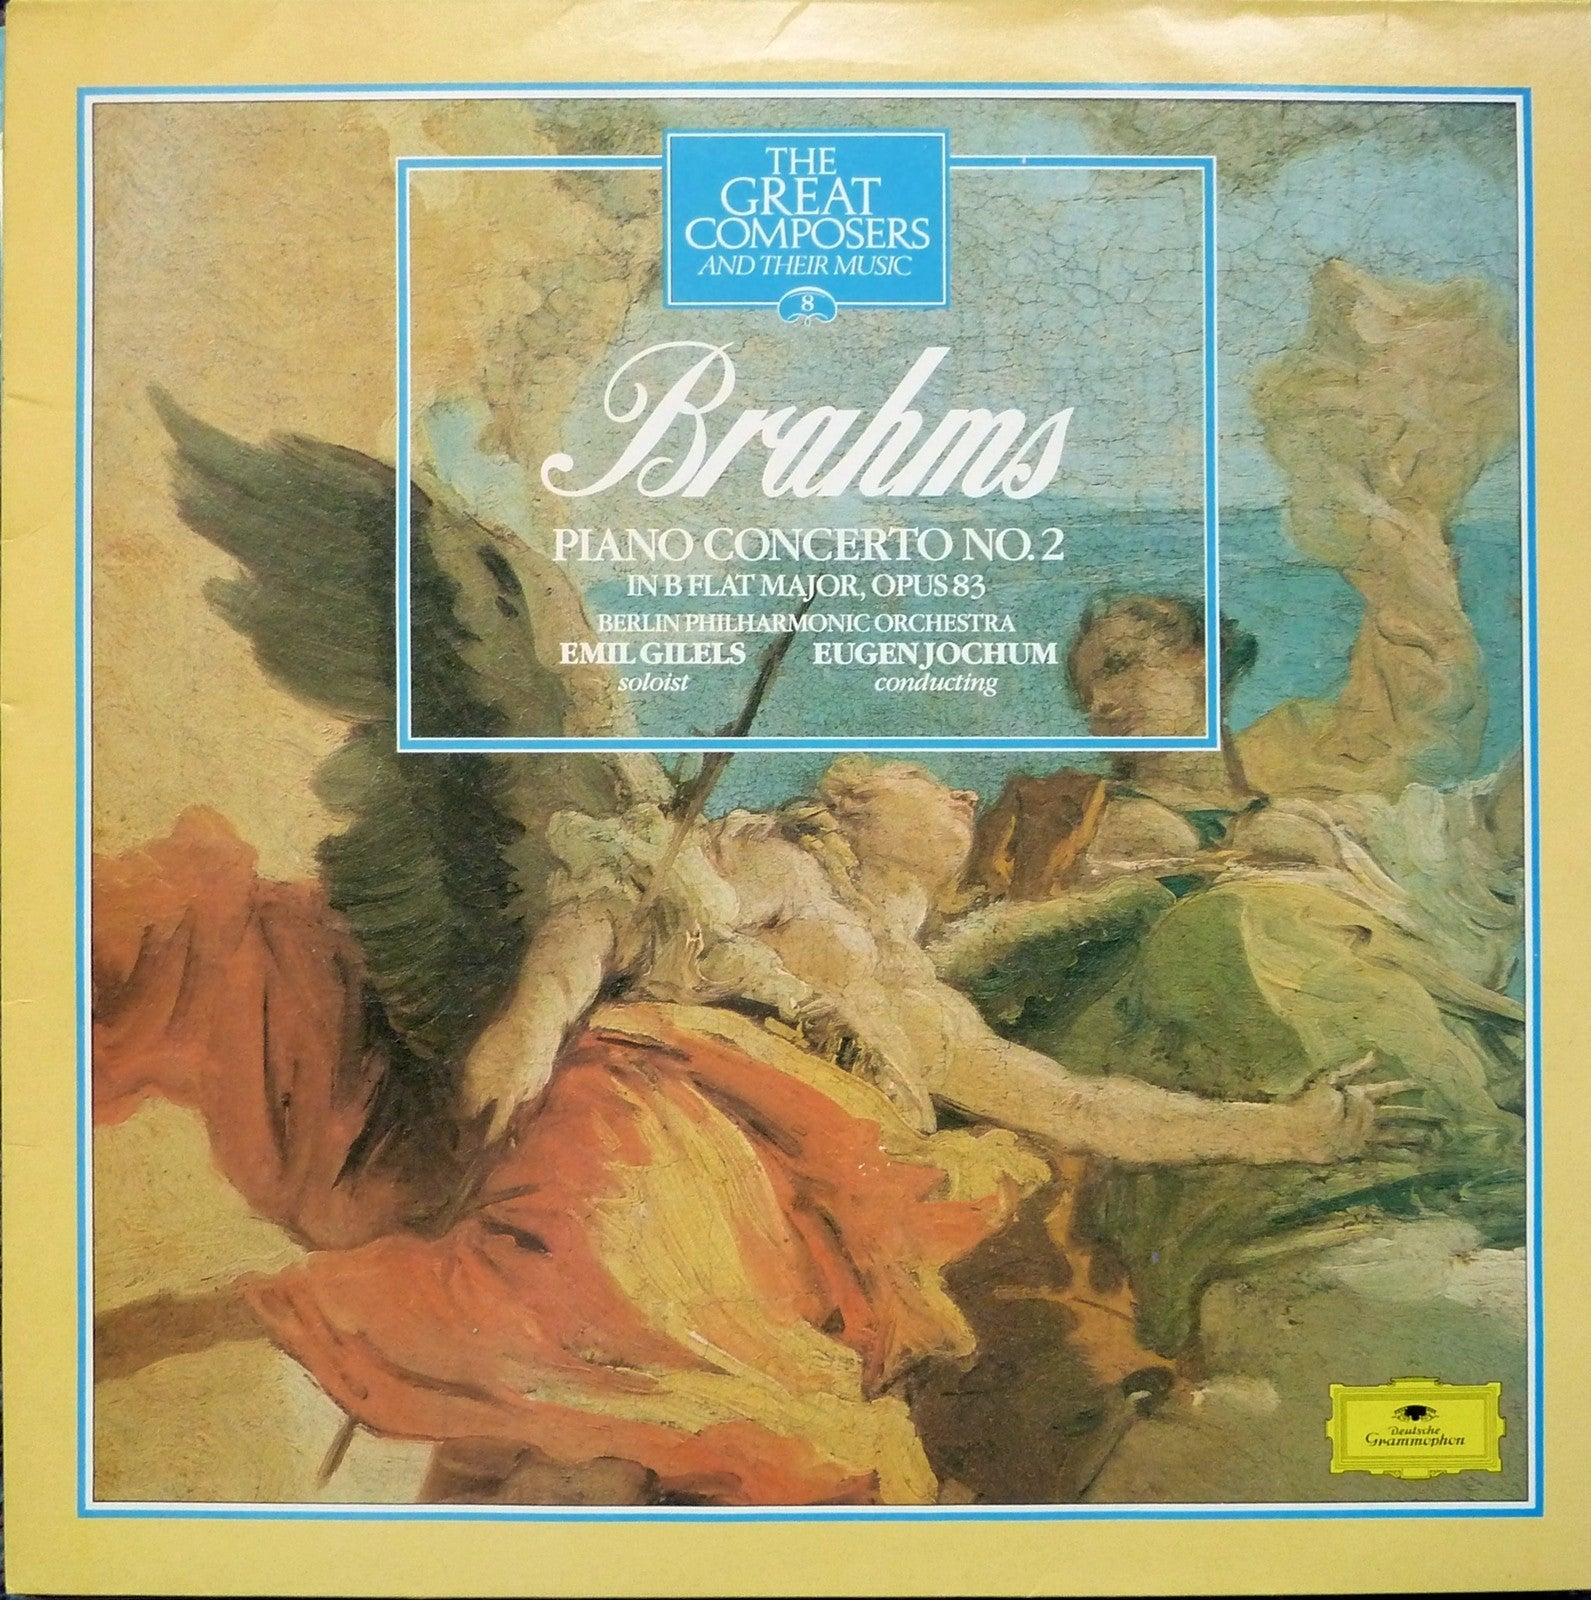 BRAHMS-PIANO CONCERT NO 2 CD VG